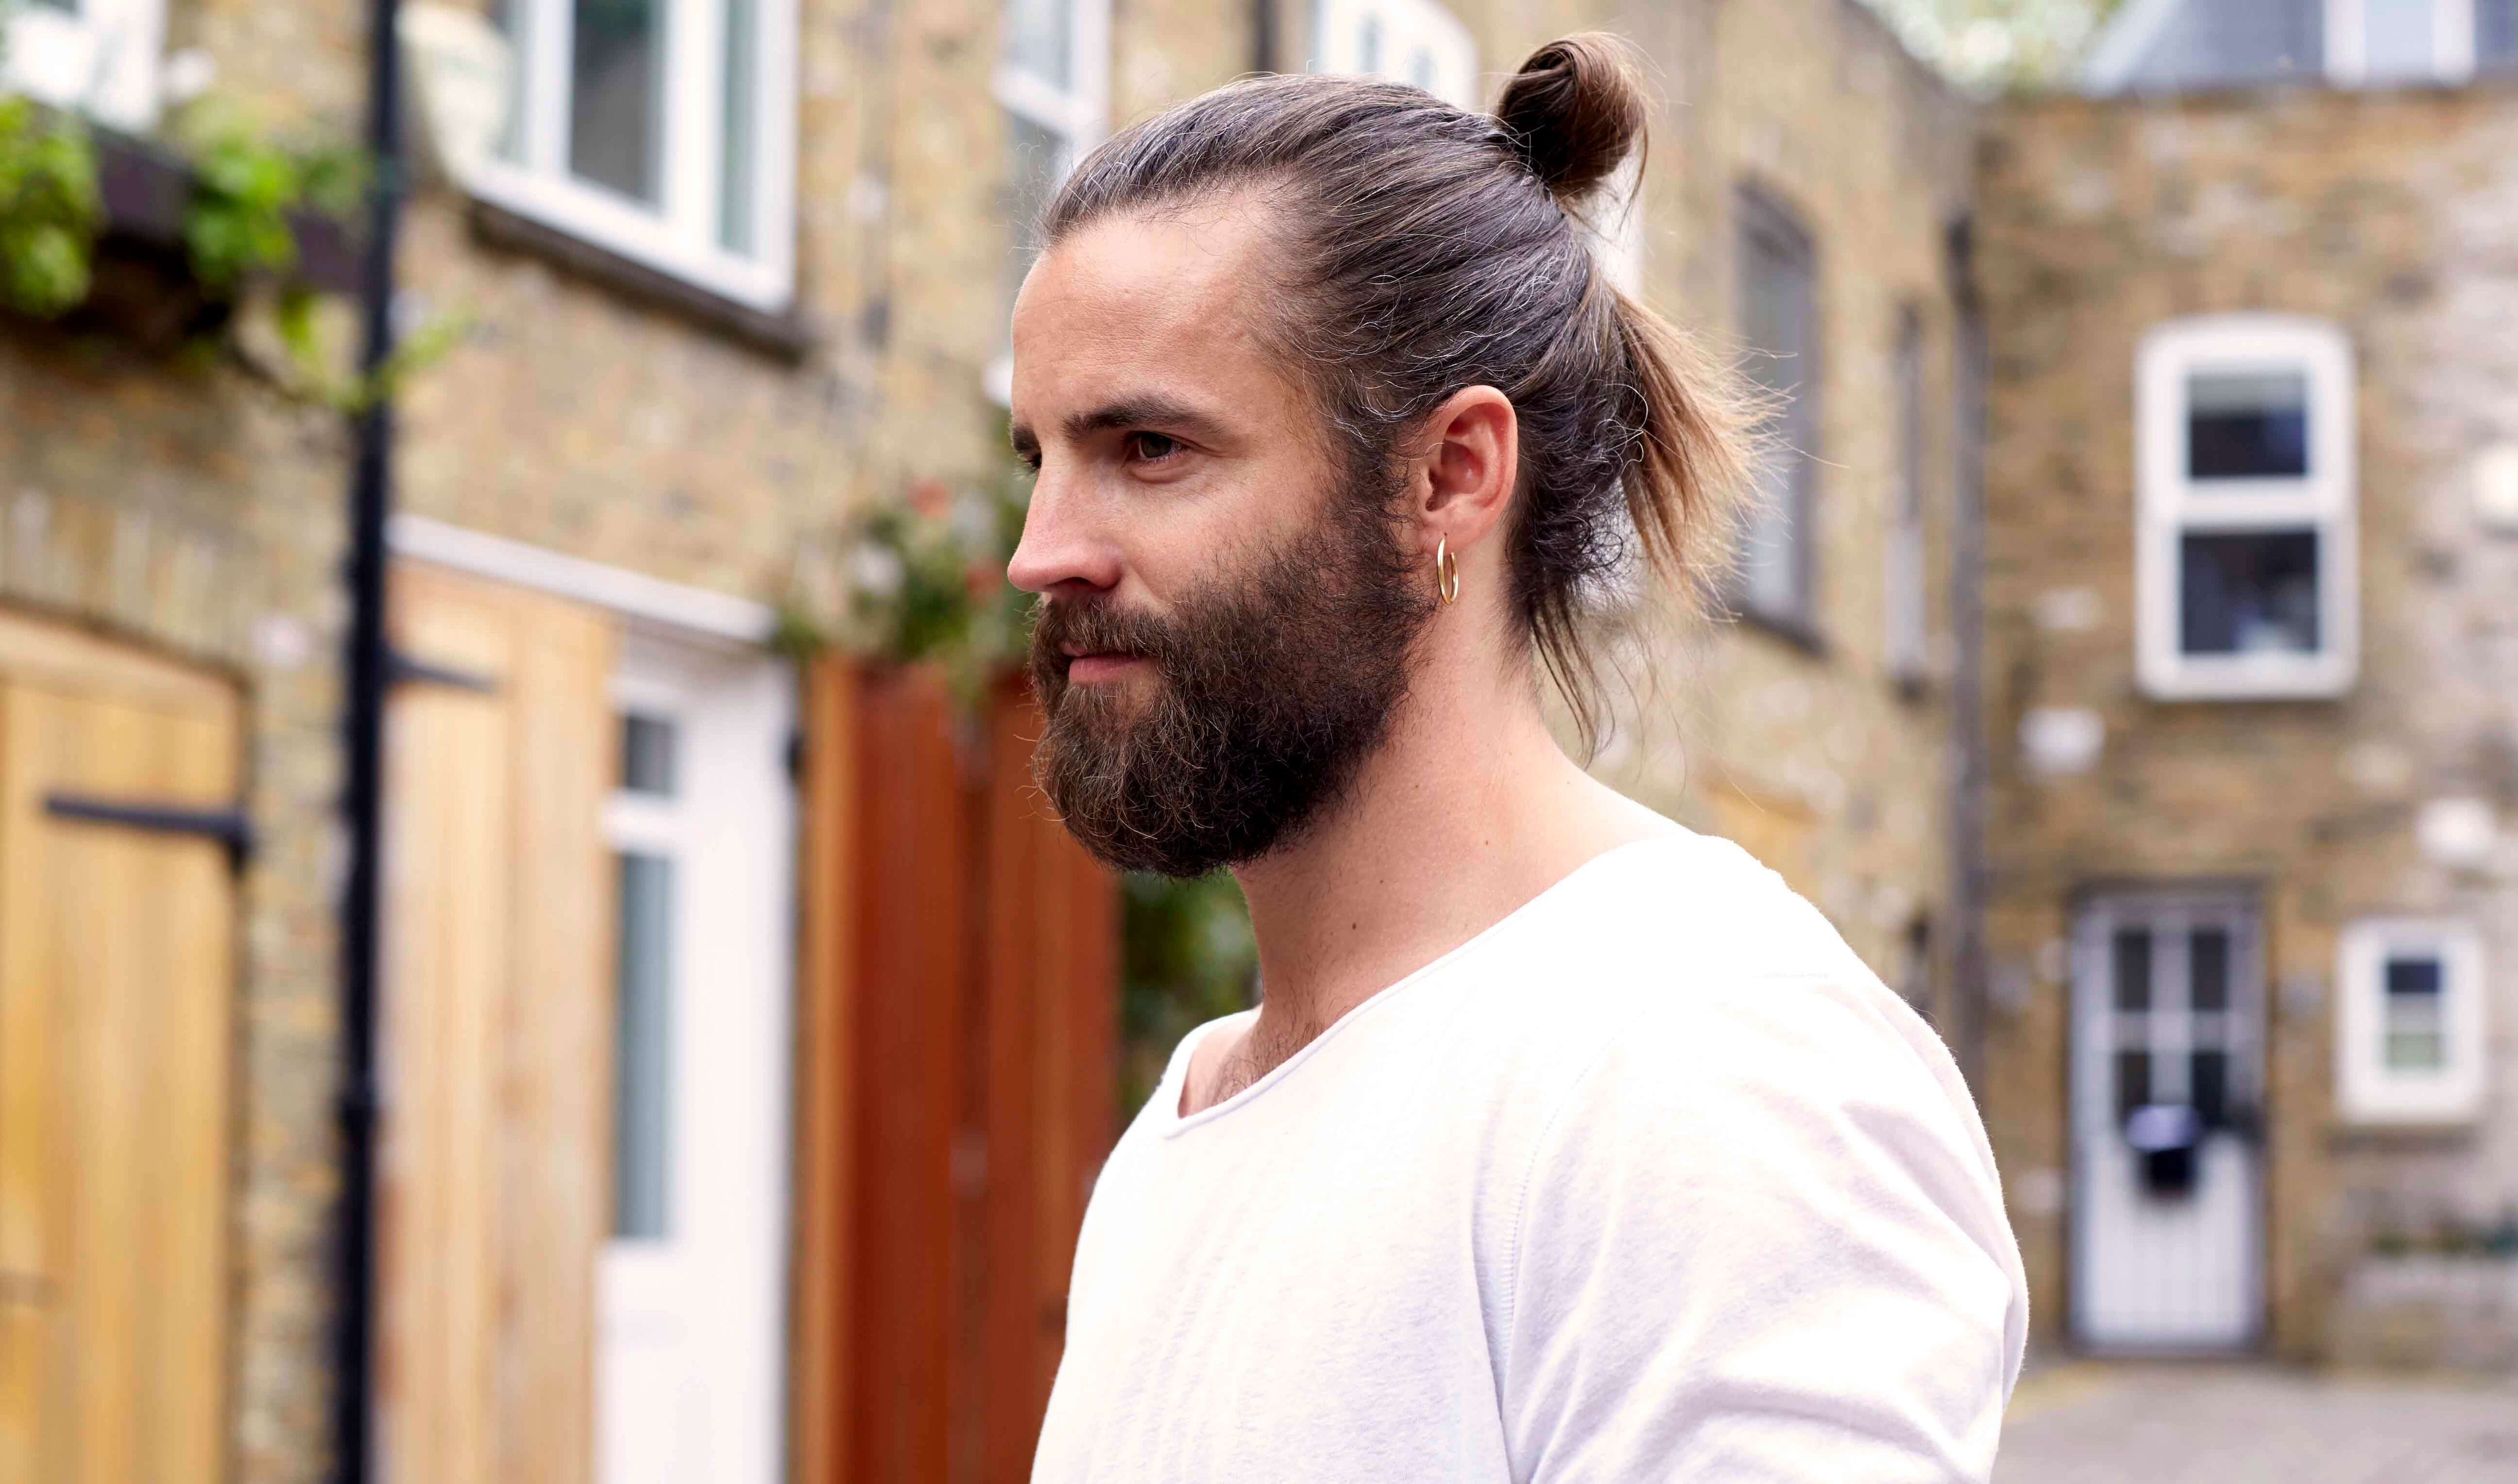 Man Bun and Beard Combos We're Kinda Obsessed With